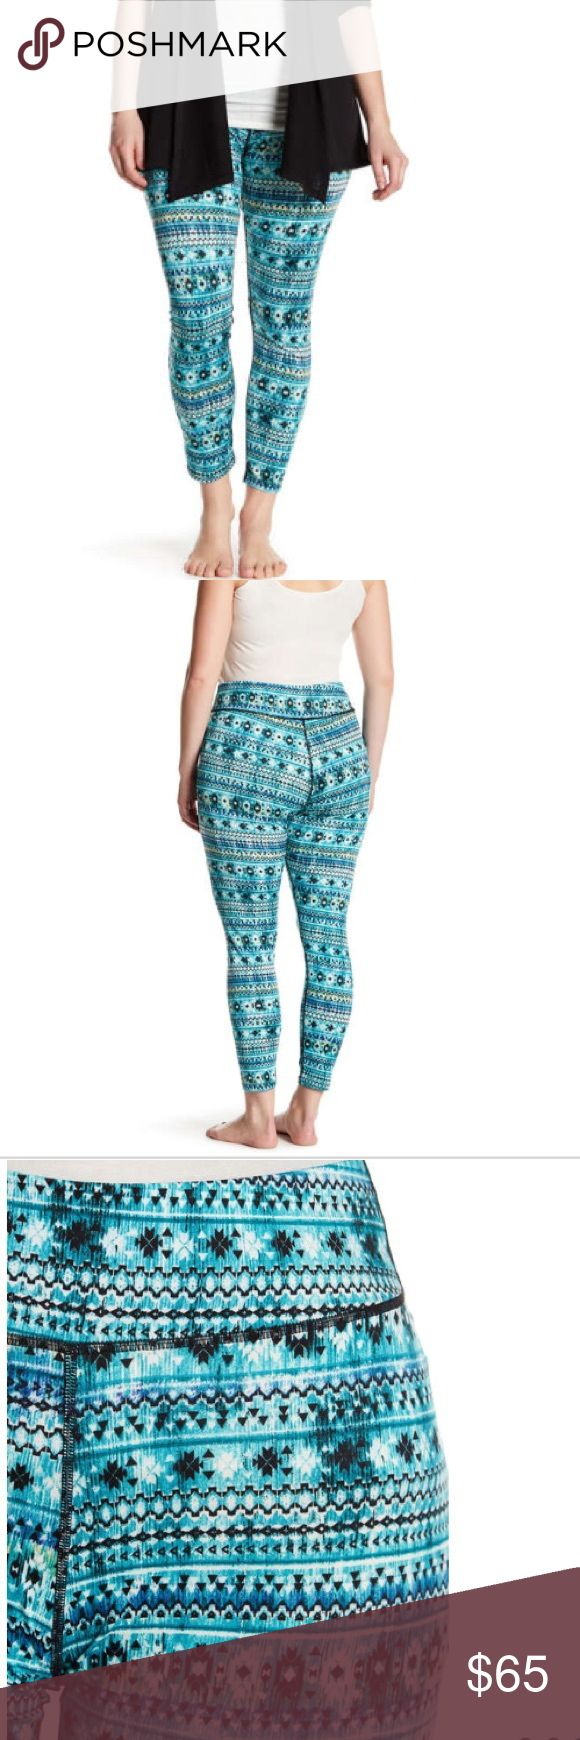 """ELECTRIC YOGA plus size pattern leggings These beautiful turquoise patterned leggings for curvy ladies will stick with you through every season of the year! Spring summer fall winter. Pattern contains blue black and white.  - Elasticized waist - Allover print - Seaming detail - Skinny leg - Stretch construction - Approx. 11"""" rise, 28"""" inseam (size 1X) - Imported  -96% polyester 4% spandex  -true to size Electric Yoga Pants Leggings"""